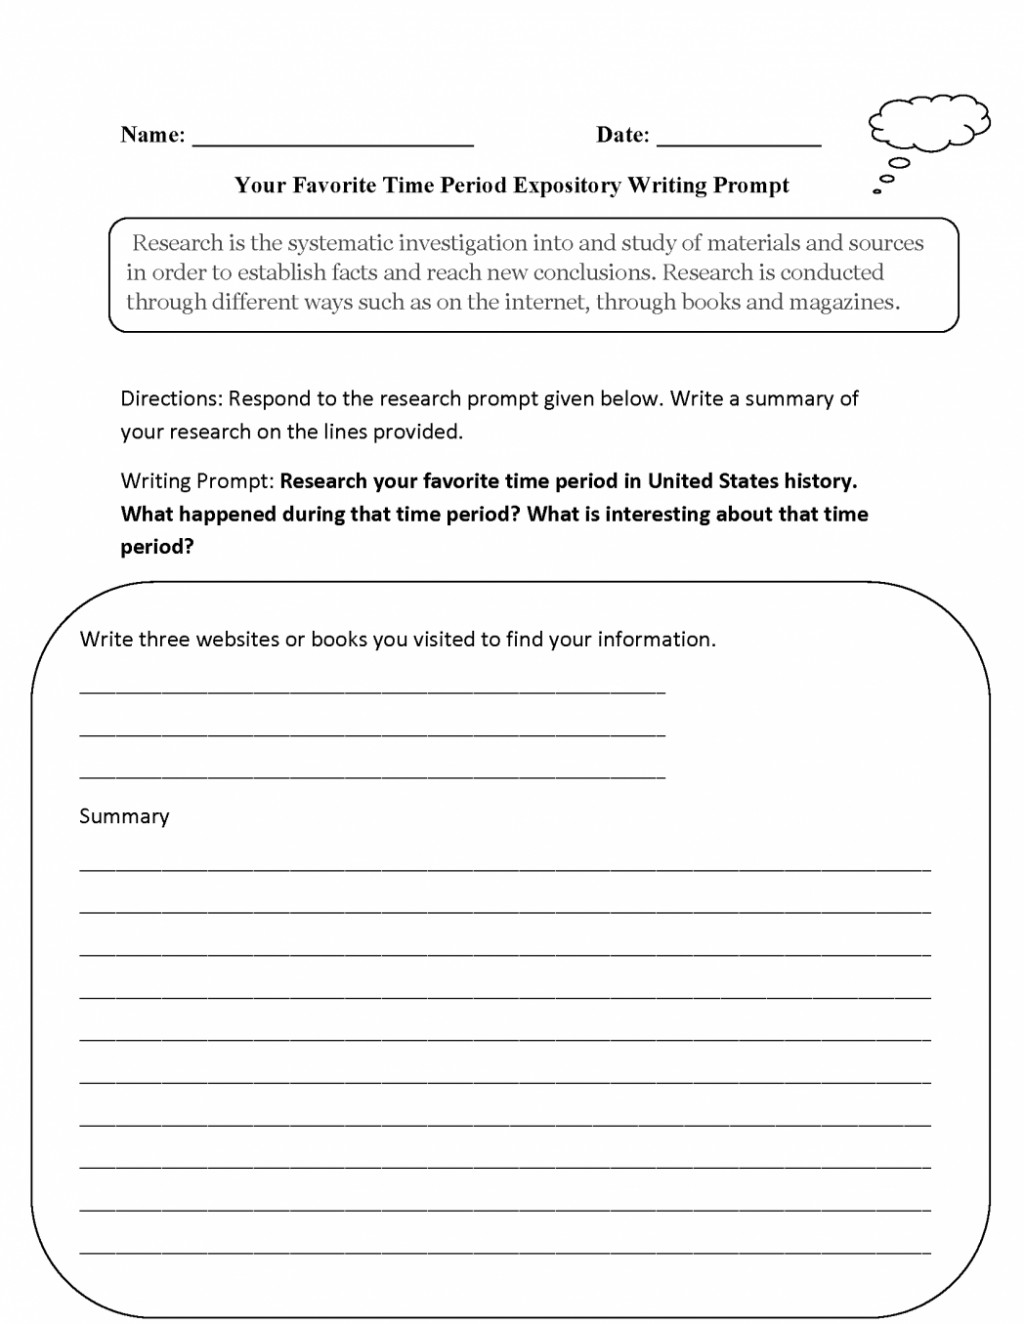 018 Essay Example Good Informative Topics Prompts Favorite Time Period Expository Writing P To Write An On The Topic Of Immigration Remarkable Prompt 4th Grade For High School College Students Large